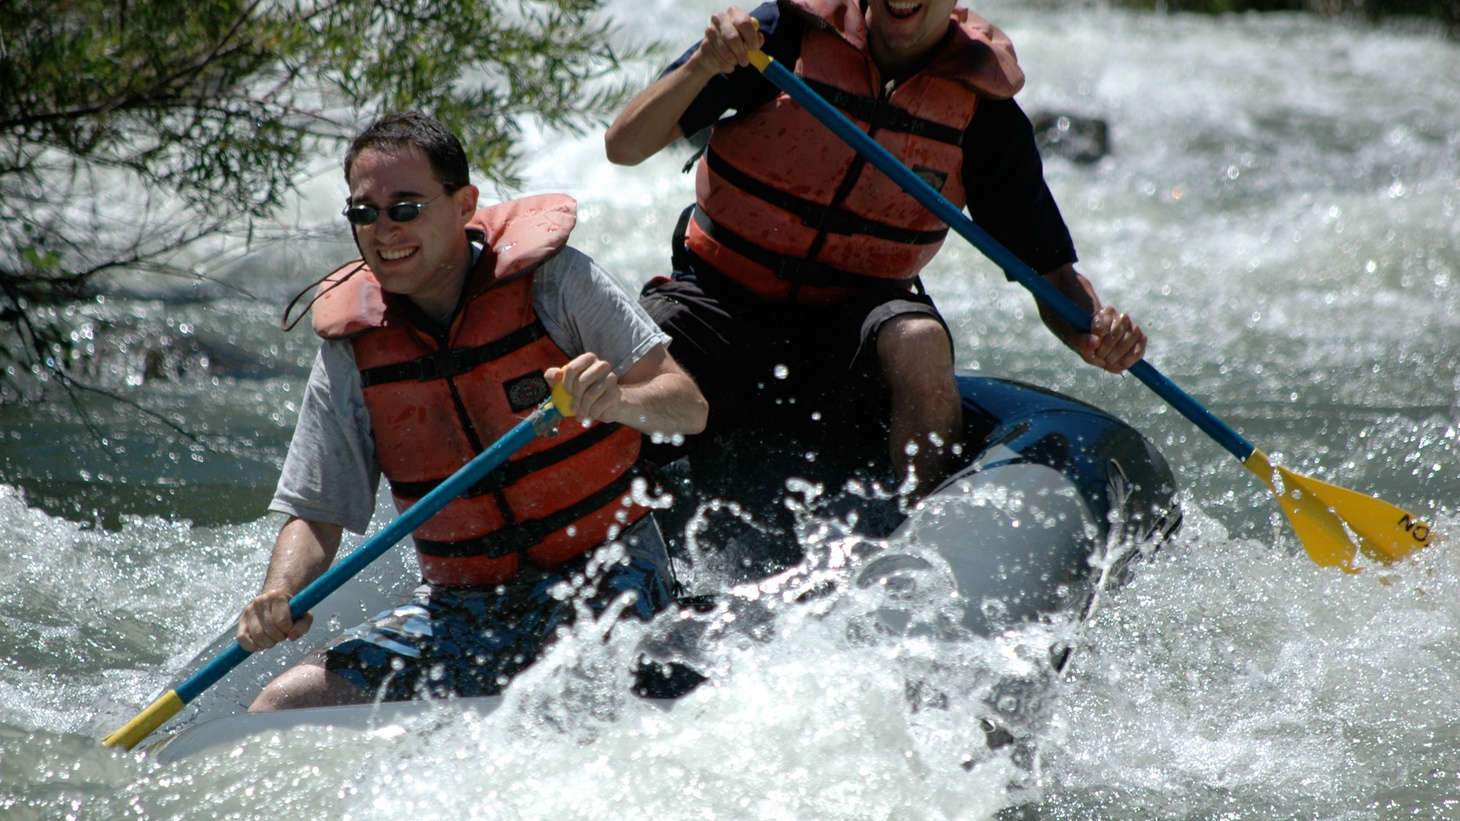 White-water rafting, fly-fishing and boating are out of business in many lakes and rivers. Restaurants in Catalina aren't serving water, and rationing is on the way. We'll hear what drought means for the $85 billion outdoor tourism industry.